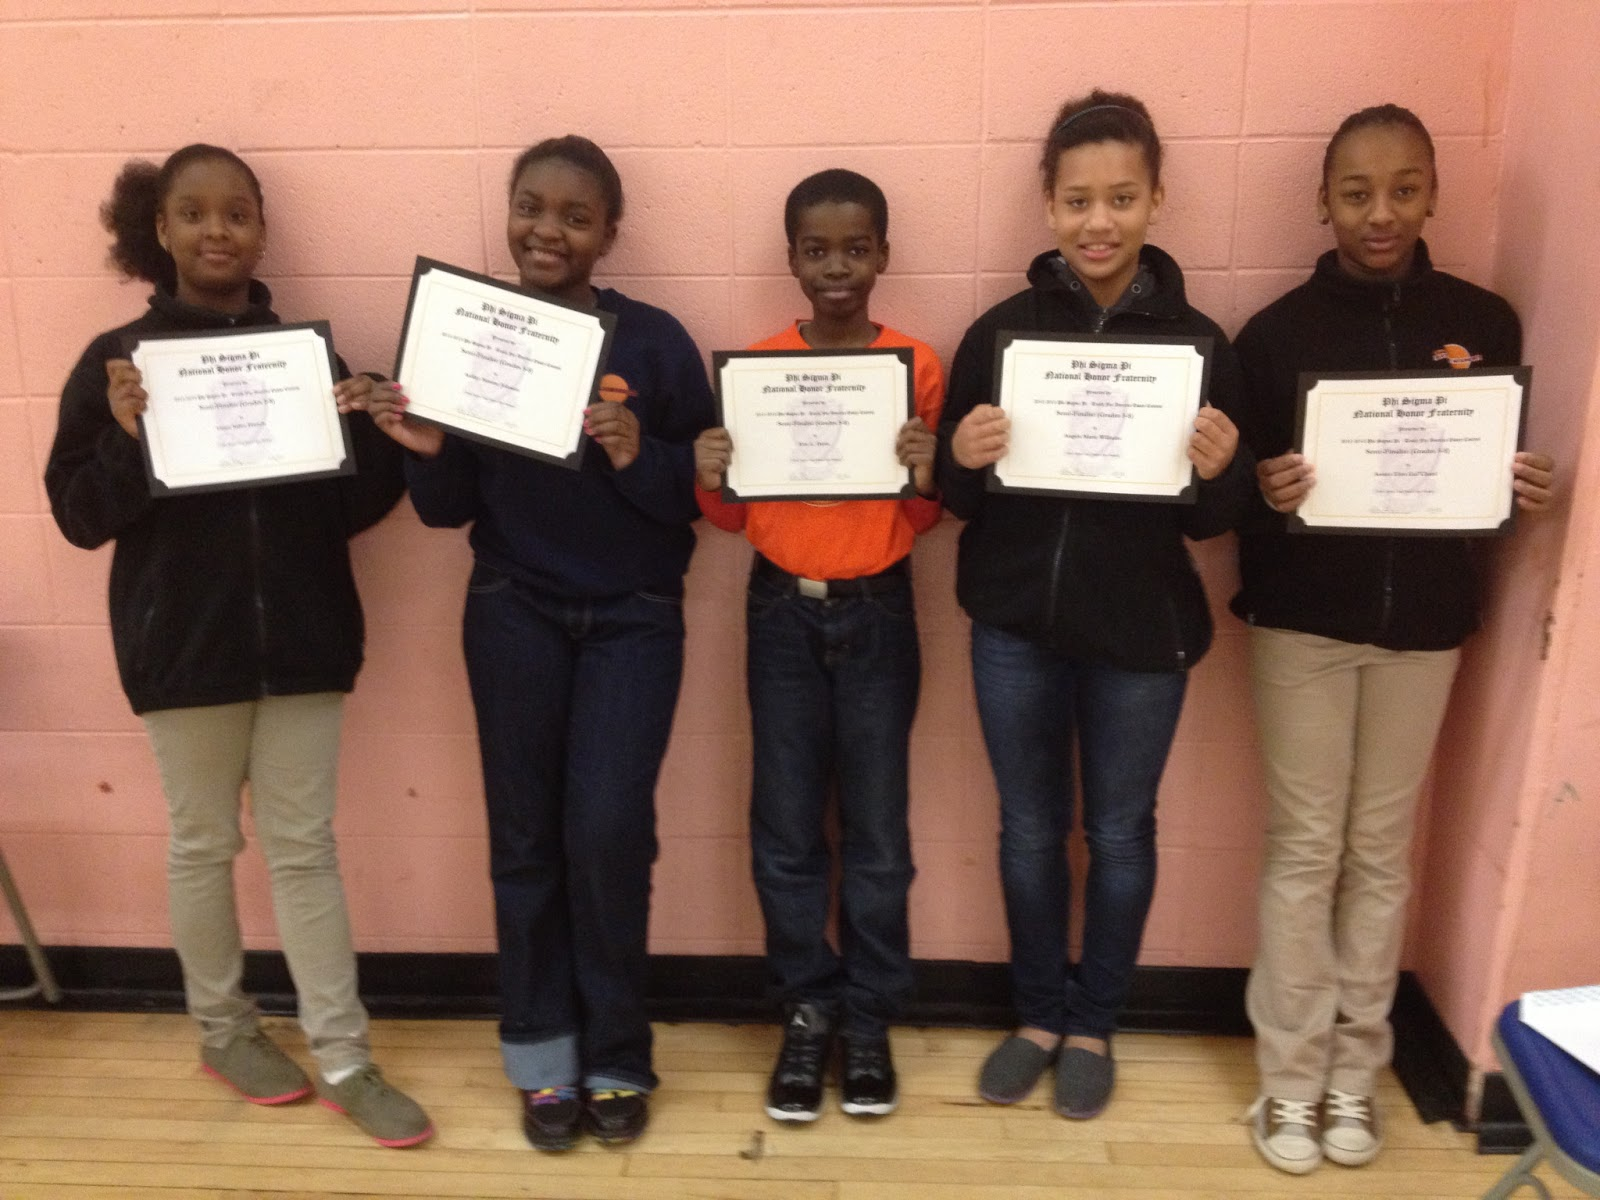 th grade english mr t excitement in the sixth grade teach for america national essay contest and two of these students won the top honors in the middle school division you can their prize winning